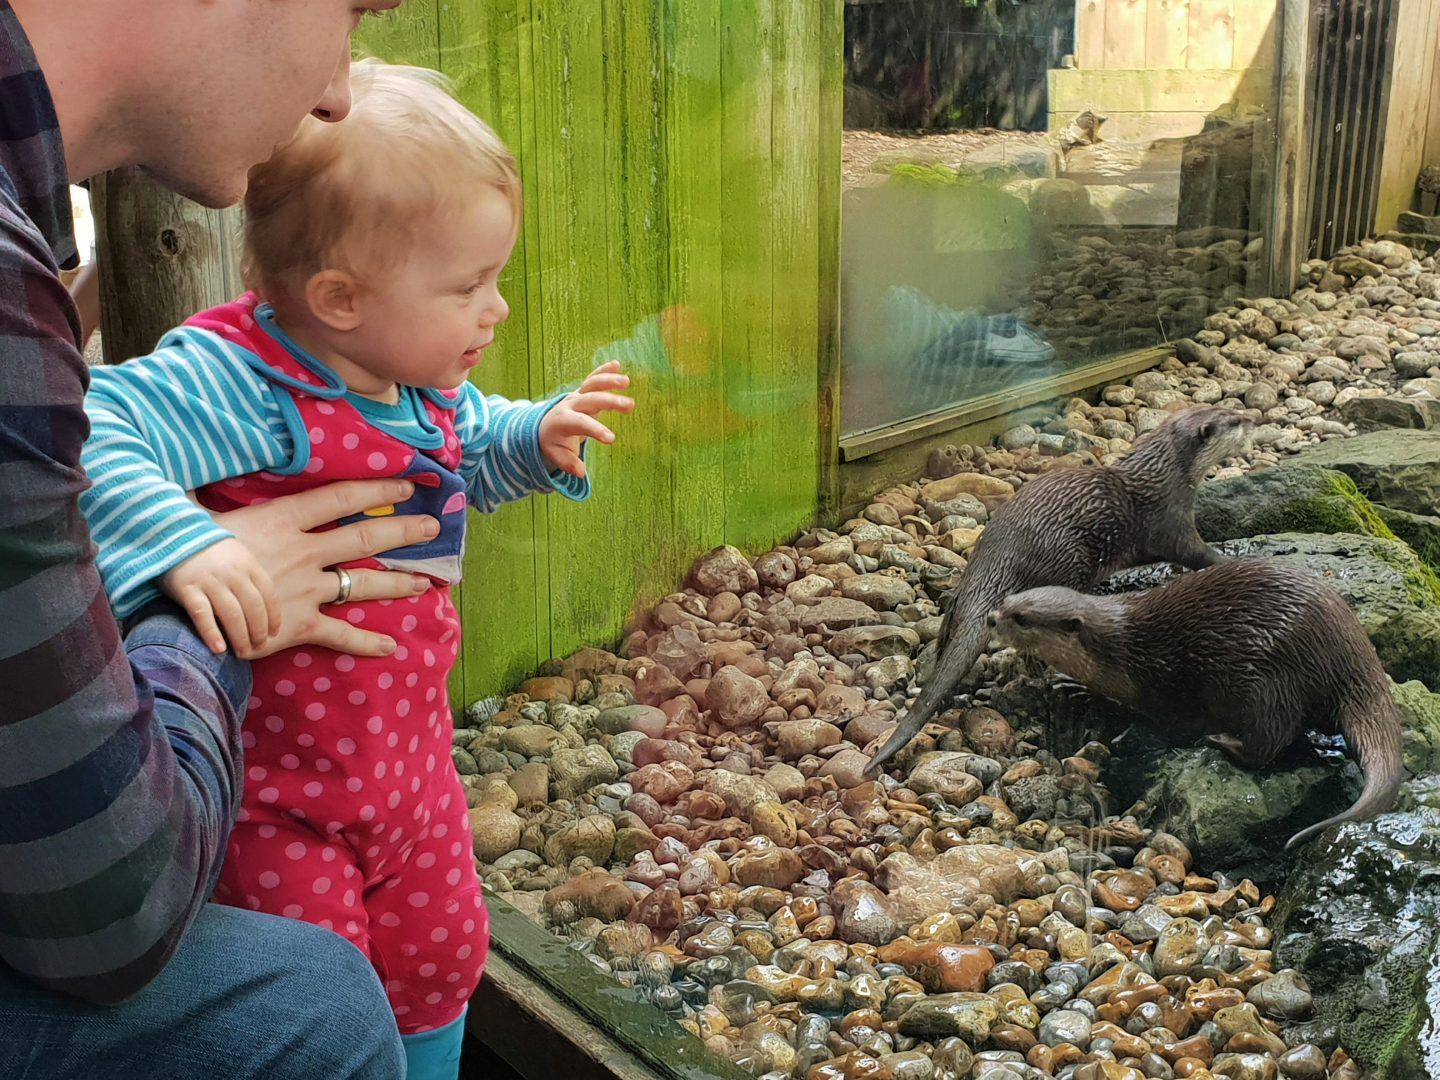 Toddler and otters at Drusillas Park